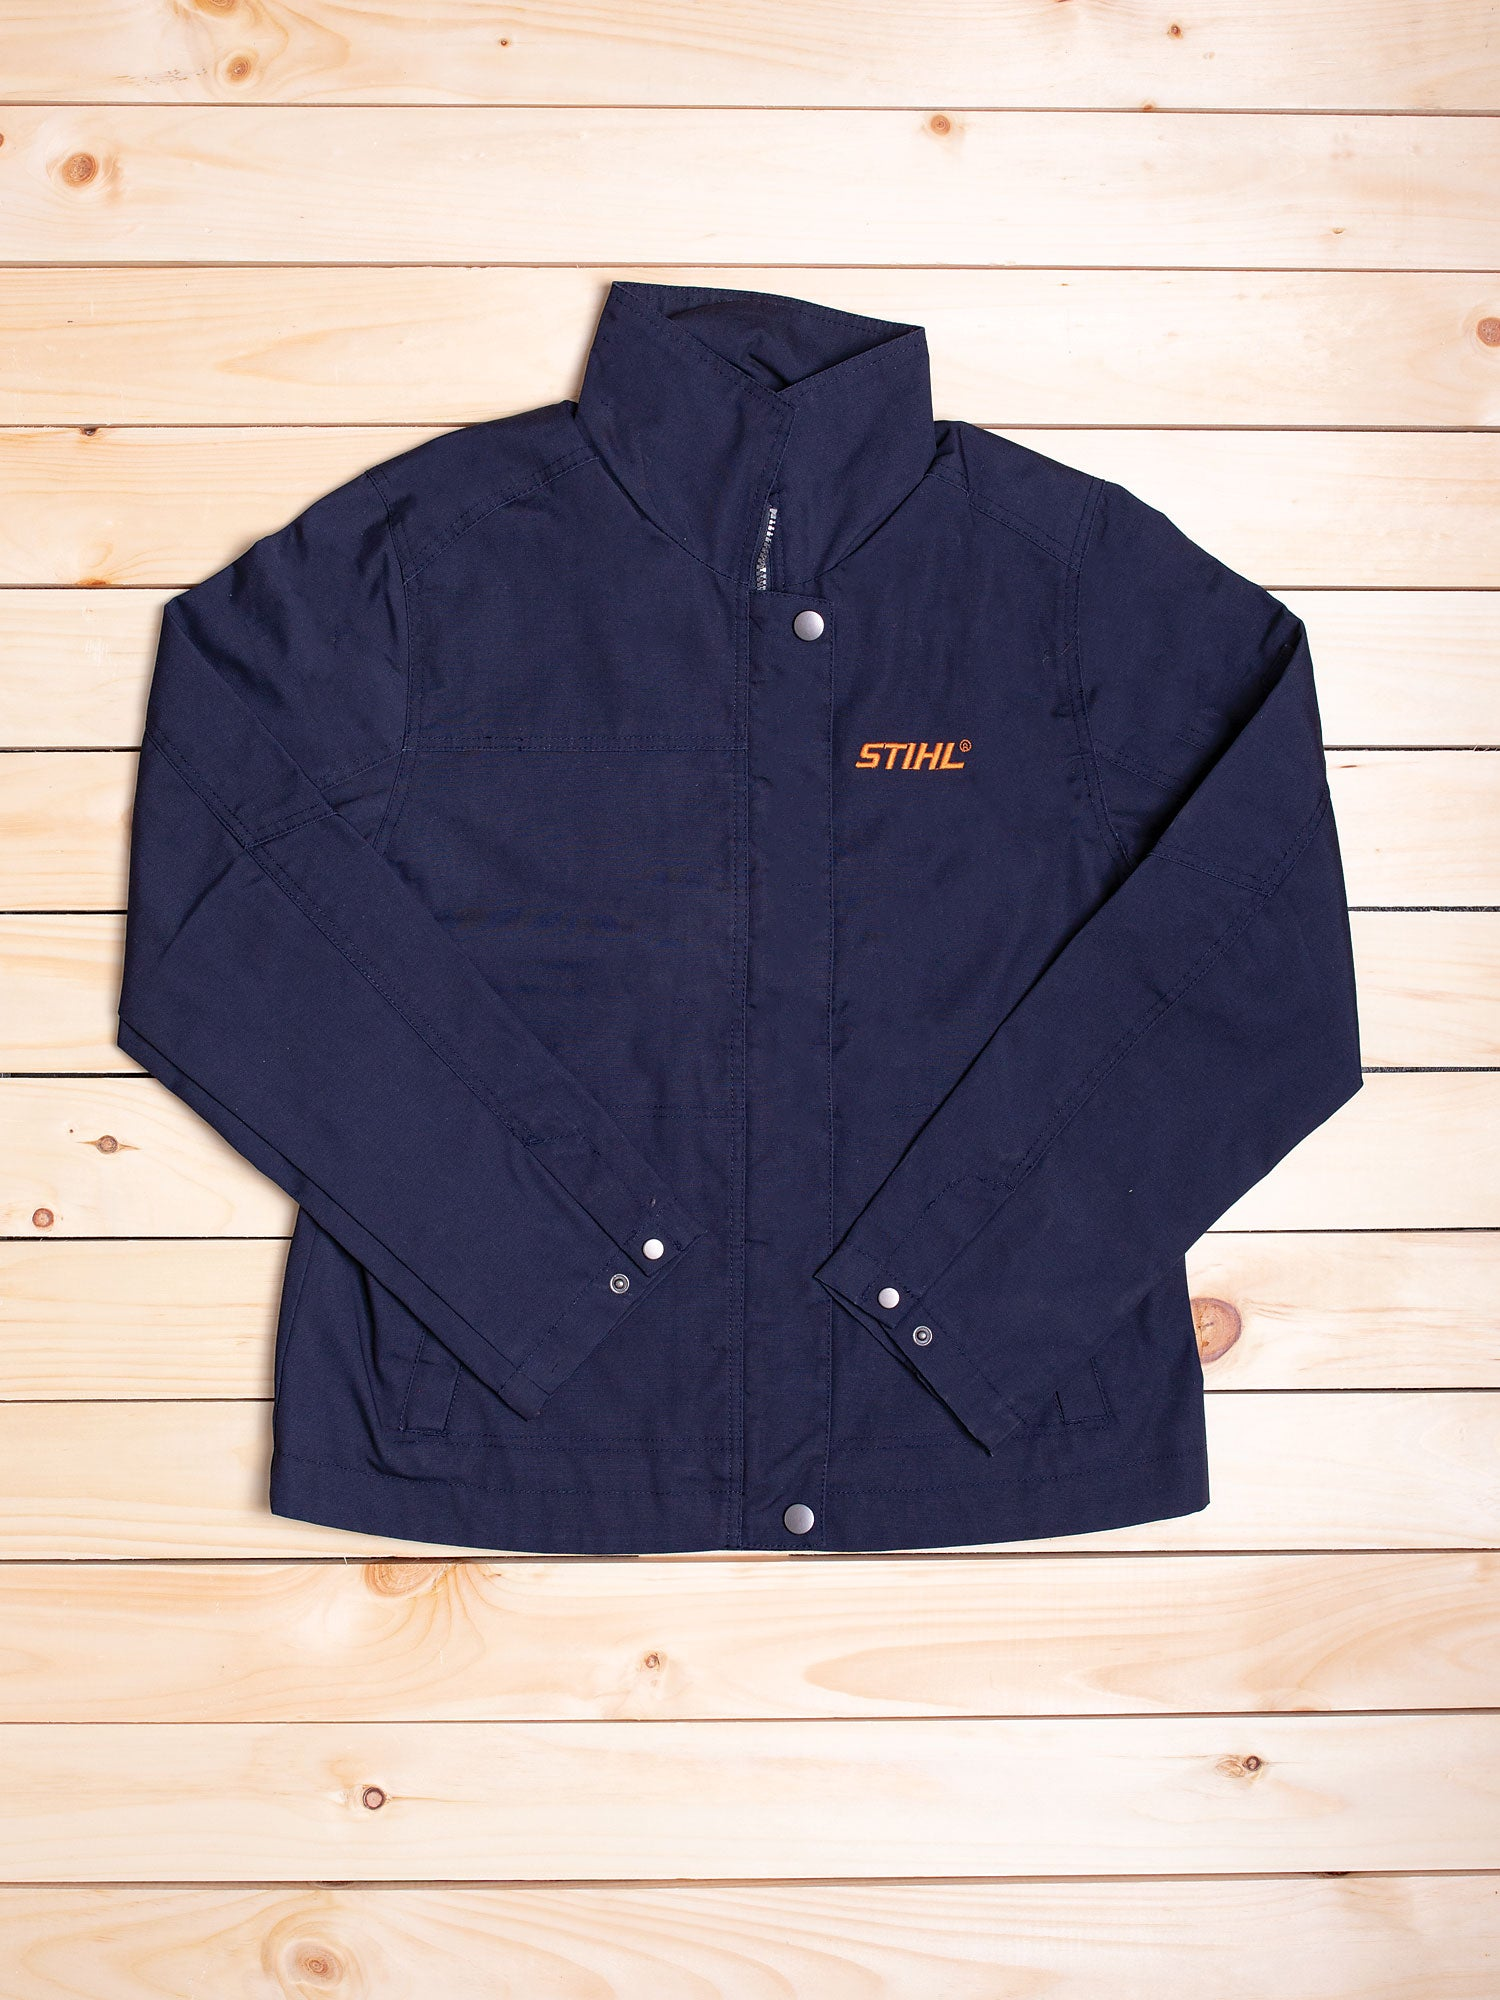 Ladies STIHL Canvas Work Jacket